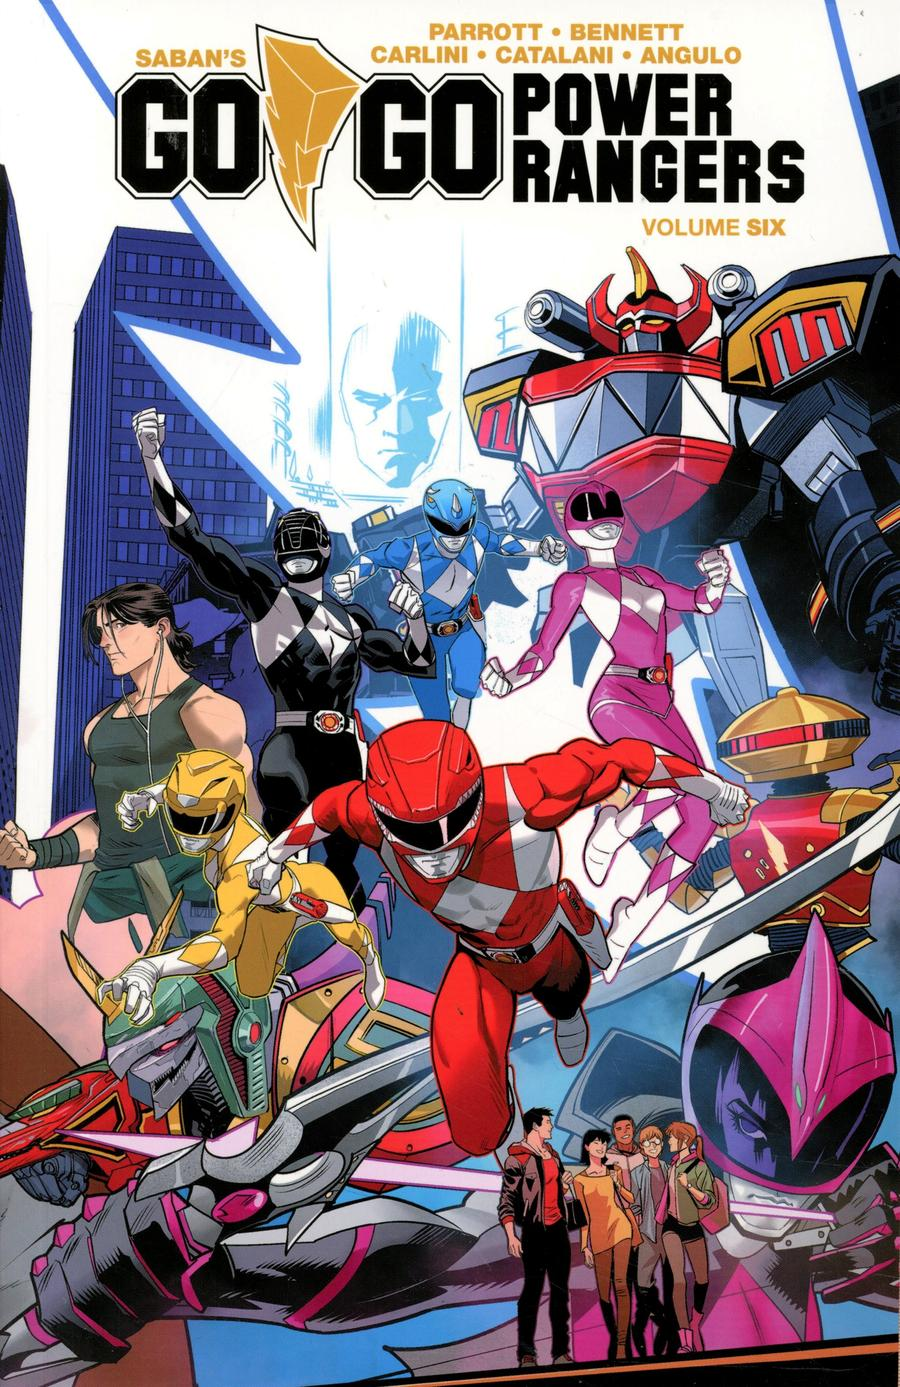 Sabans Go Go Power Rangers Vol 6 TP